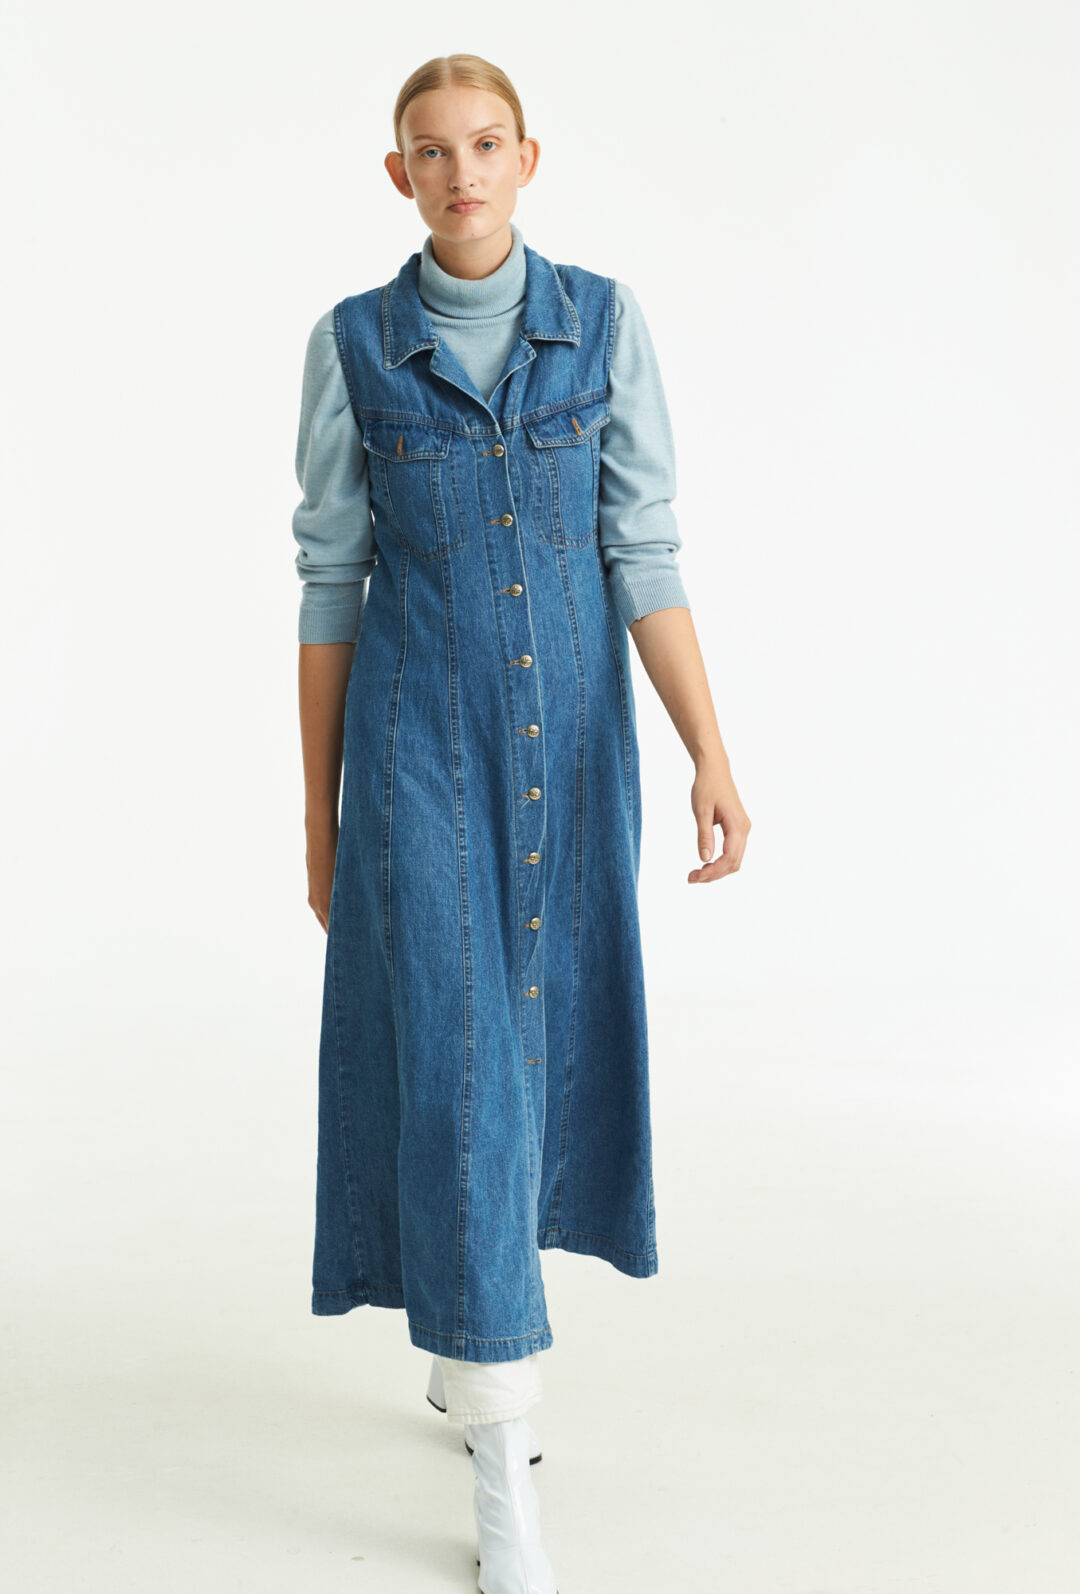 Vintage Collect23 denim dress